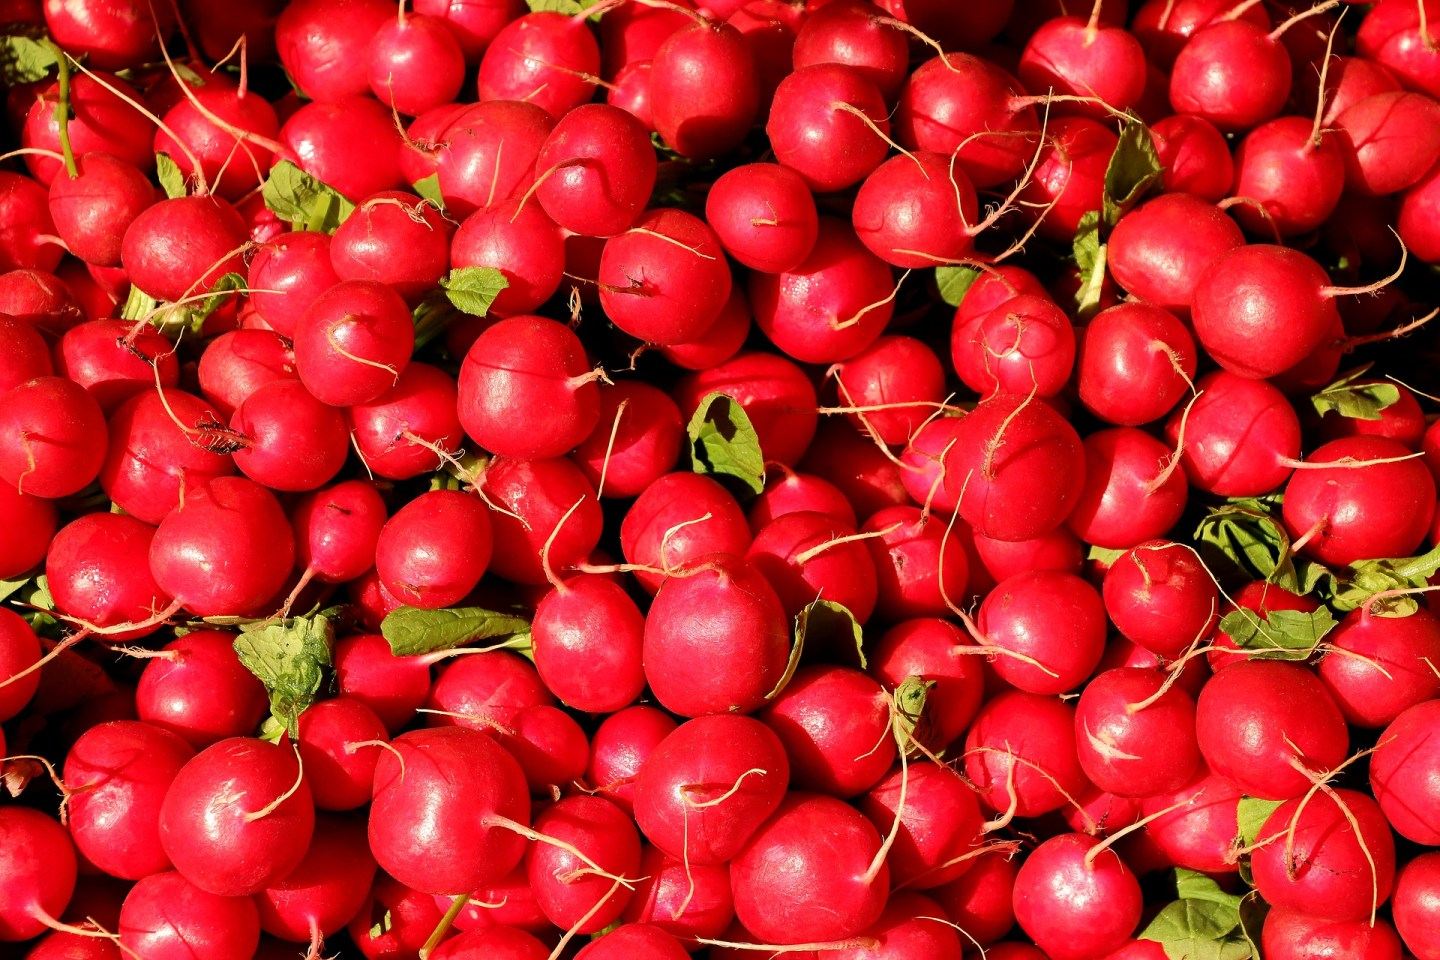 My favourite of all weight loss-friendly foods - radishes